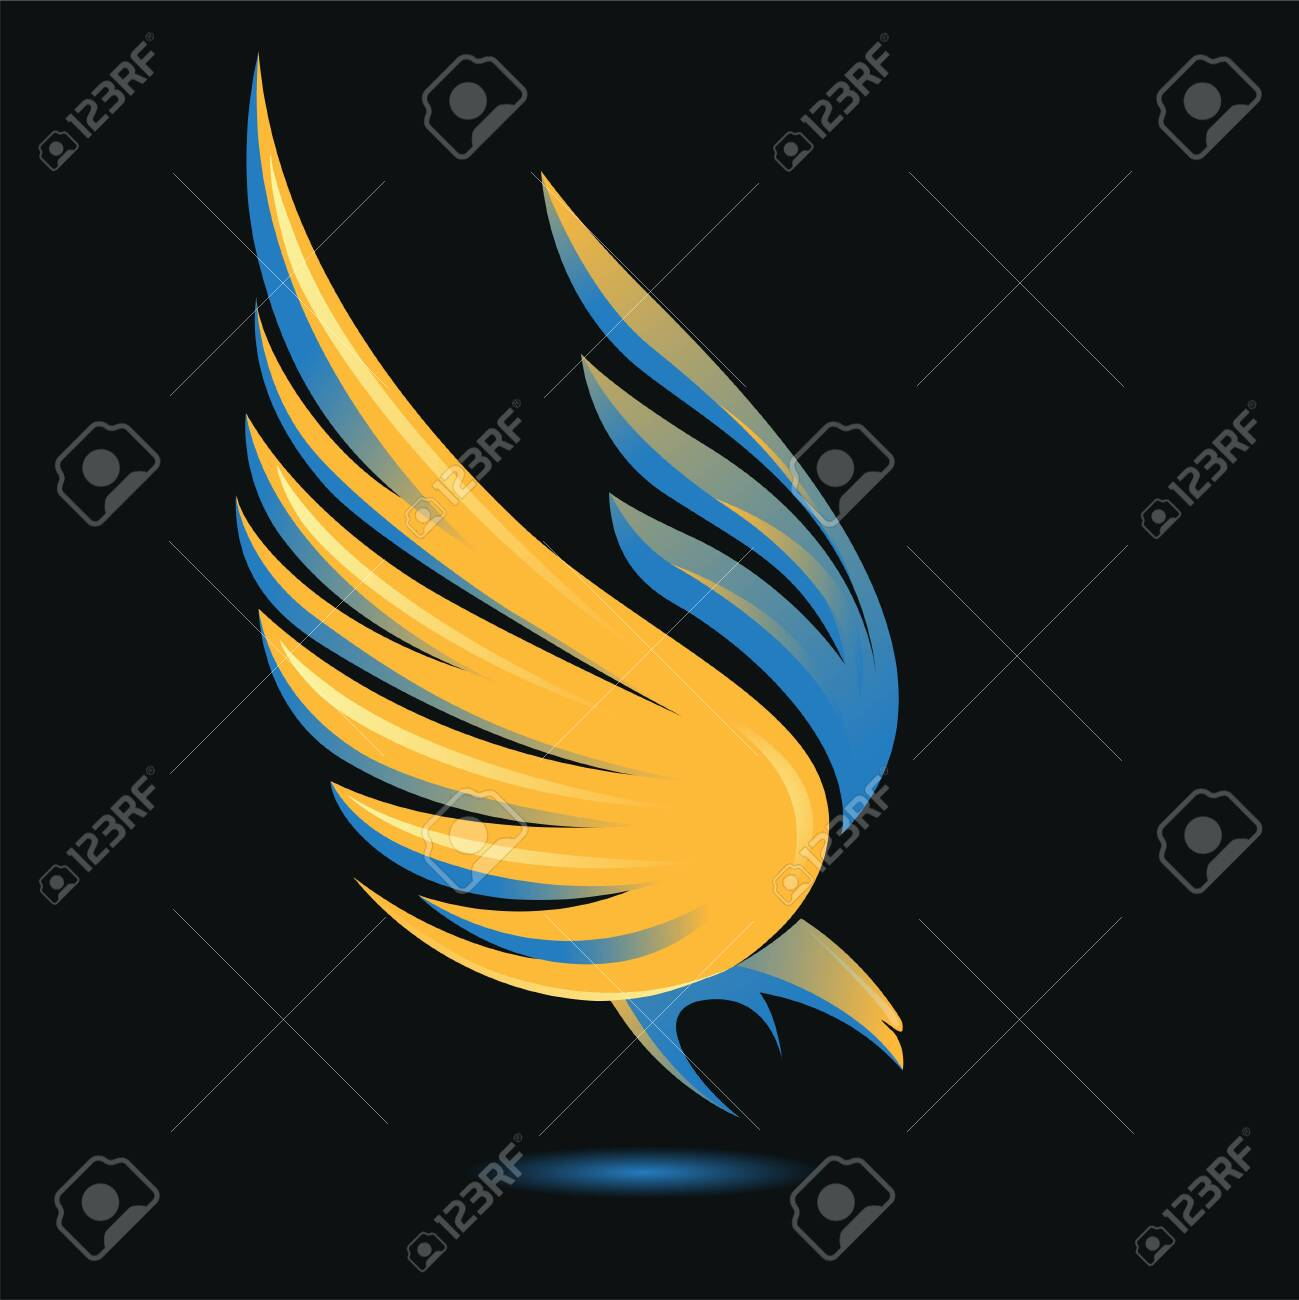 Stylized flying down bird silhouette in golden, blue, yellow and black colors. Attacking hunting Eagle image. Shining Phoenix. Vector illustration. Works well as a tattoo, emblem, print or mascot. - 151278558